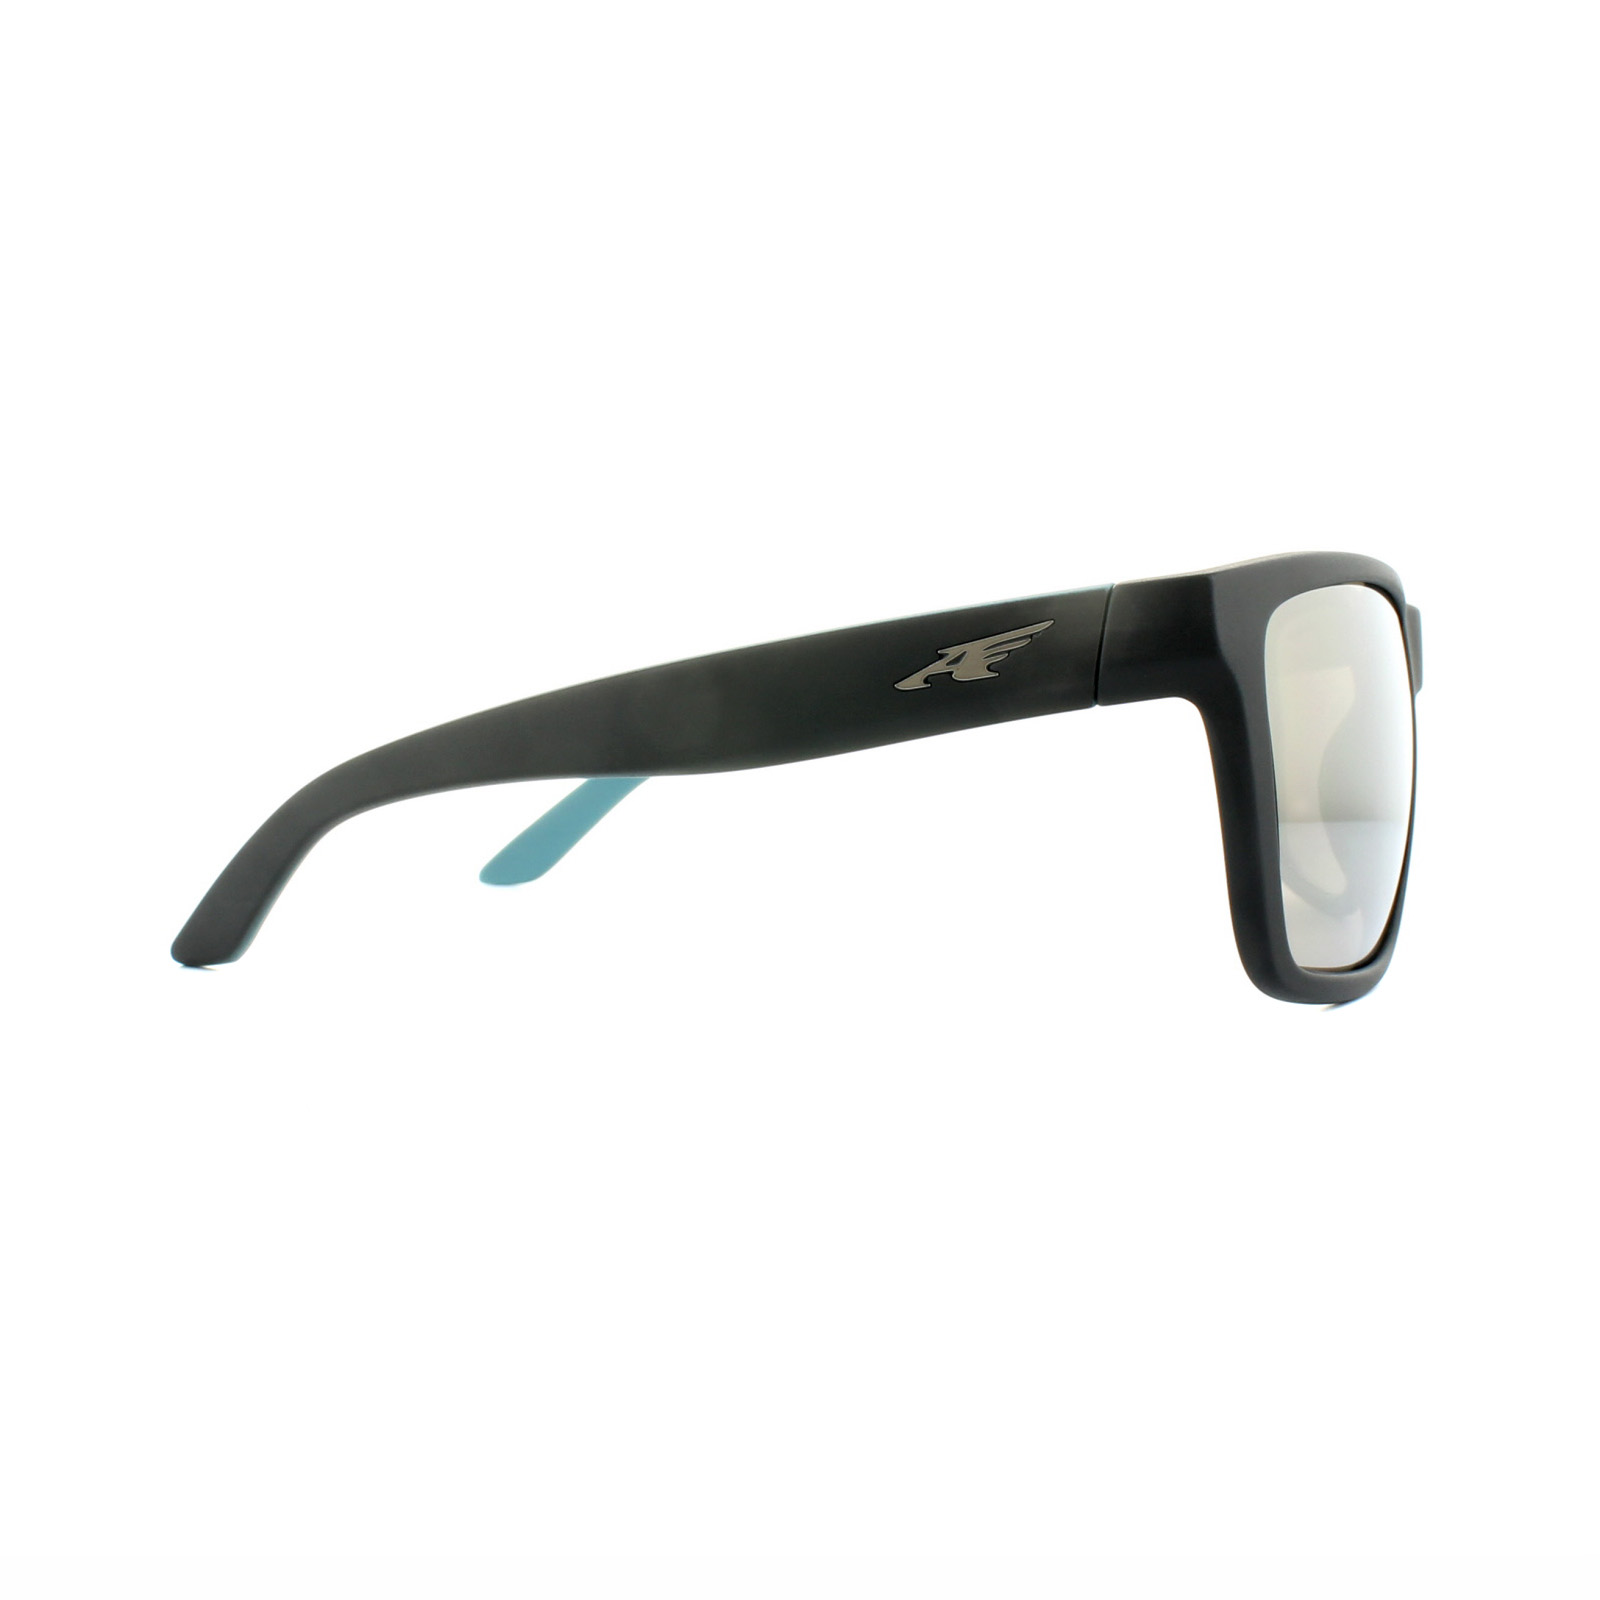 7cee8081a6 Sentinel Arnette Sunglasses Witch Doctor 4177 24355A Black Turquoise Brown  Mirror Gold